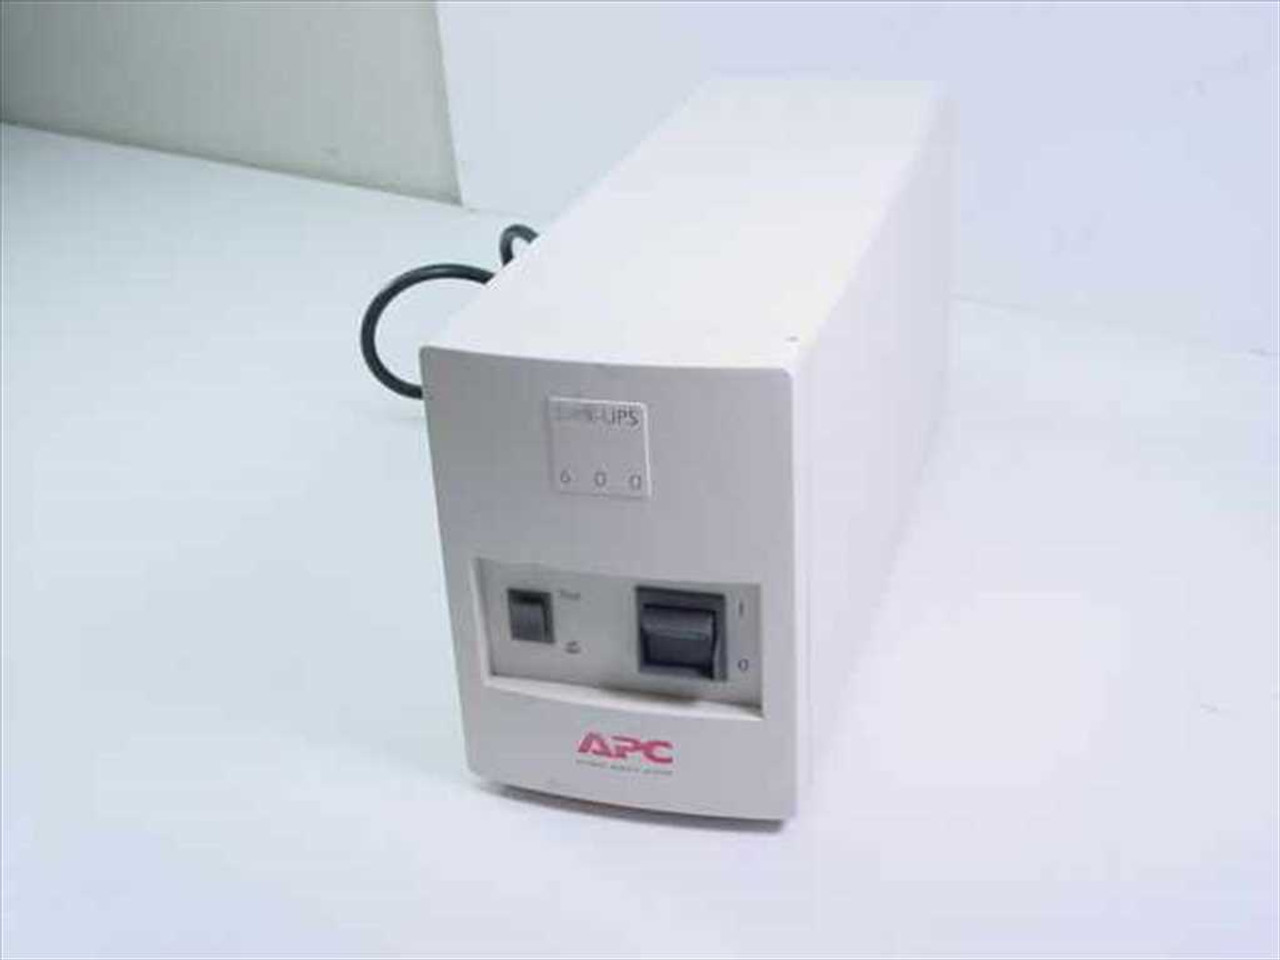 apc bp1000 1000 va back ups pro 1000 670watts recycledgoods com apc 600 va back ups 600 bk600c no battery